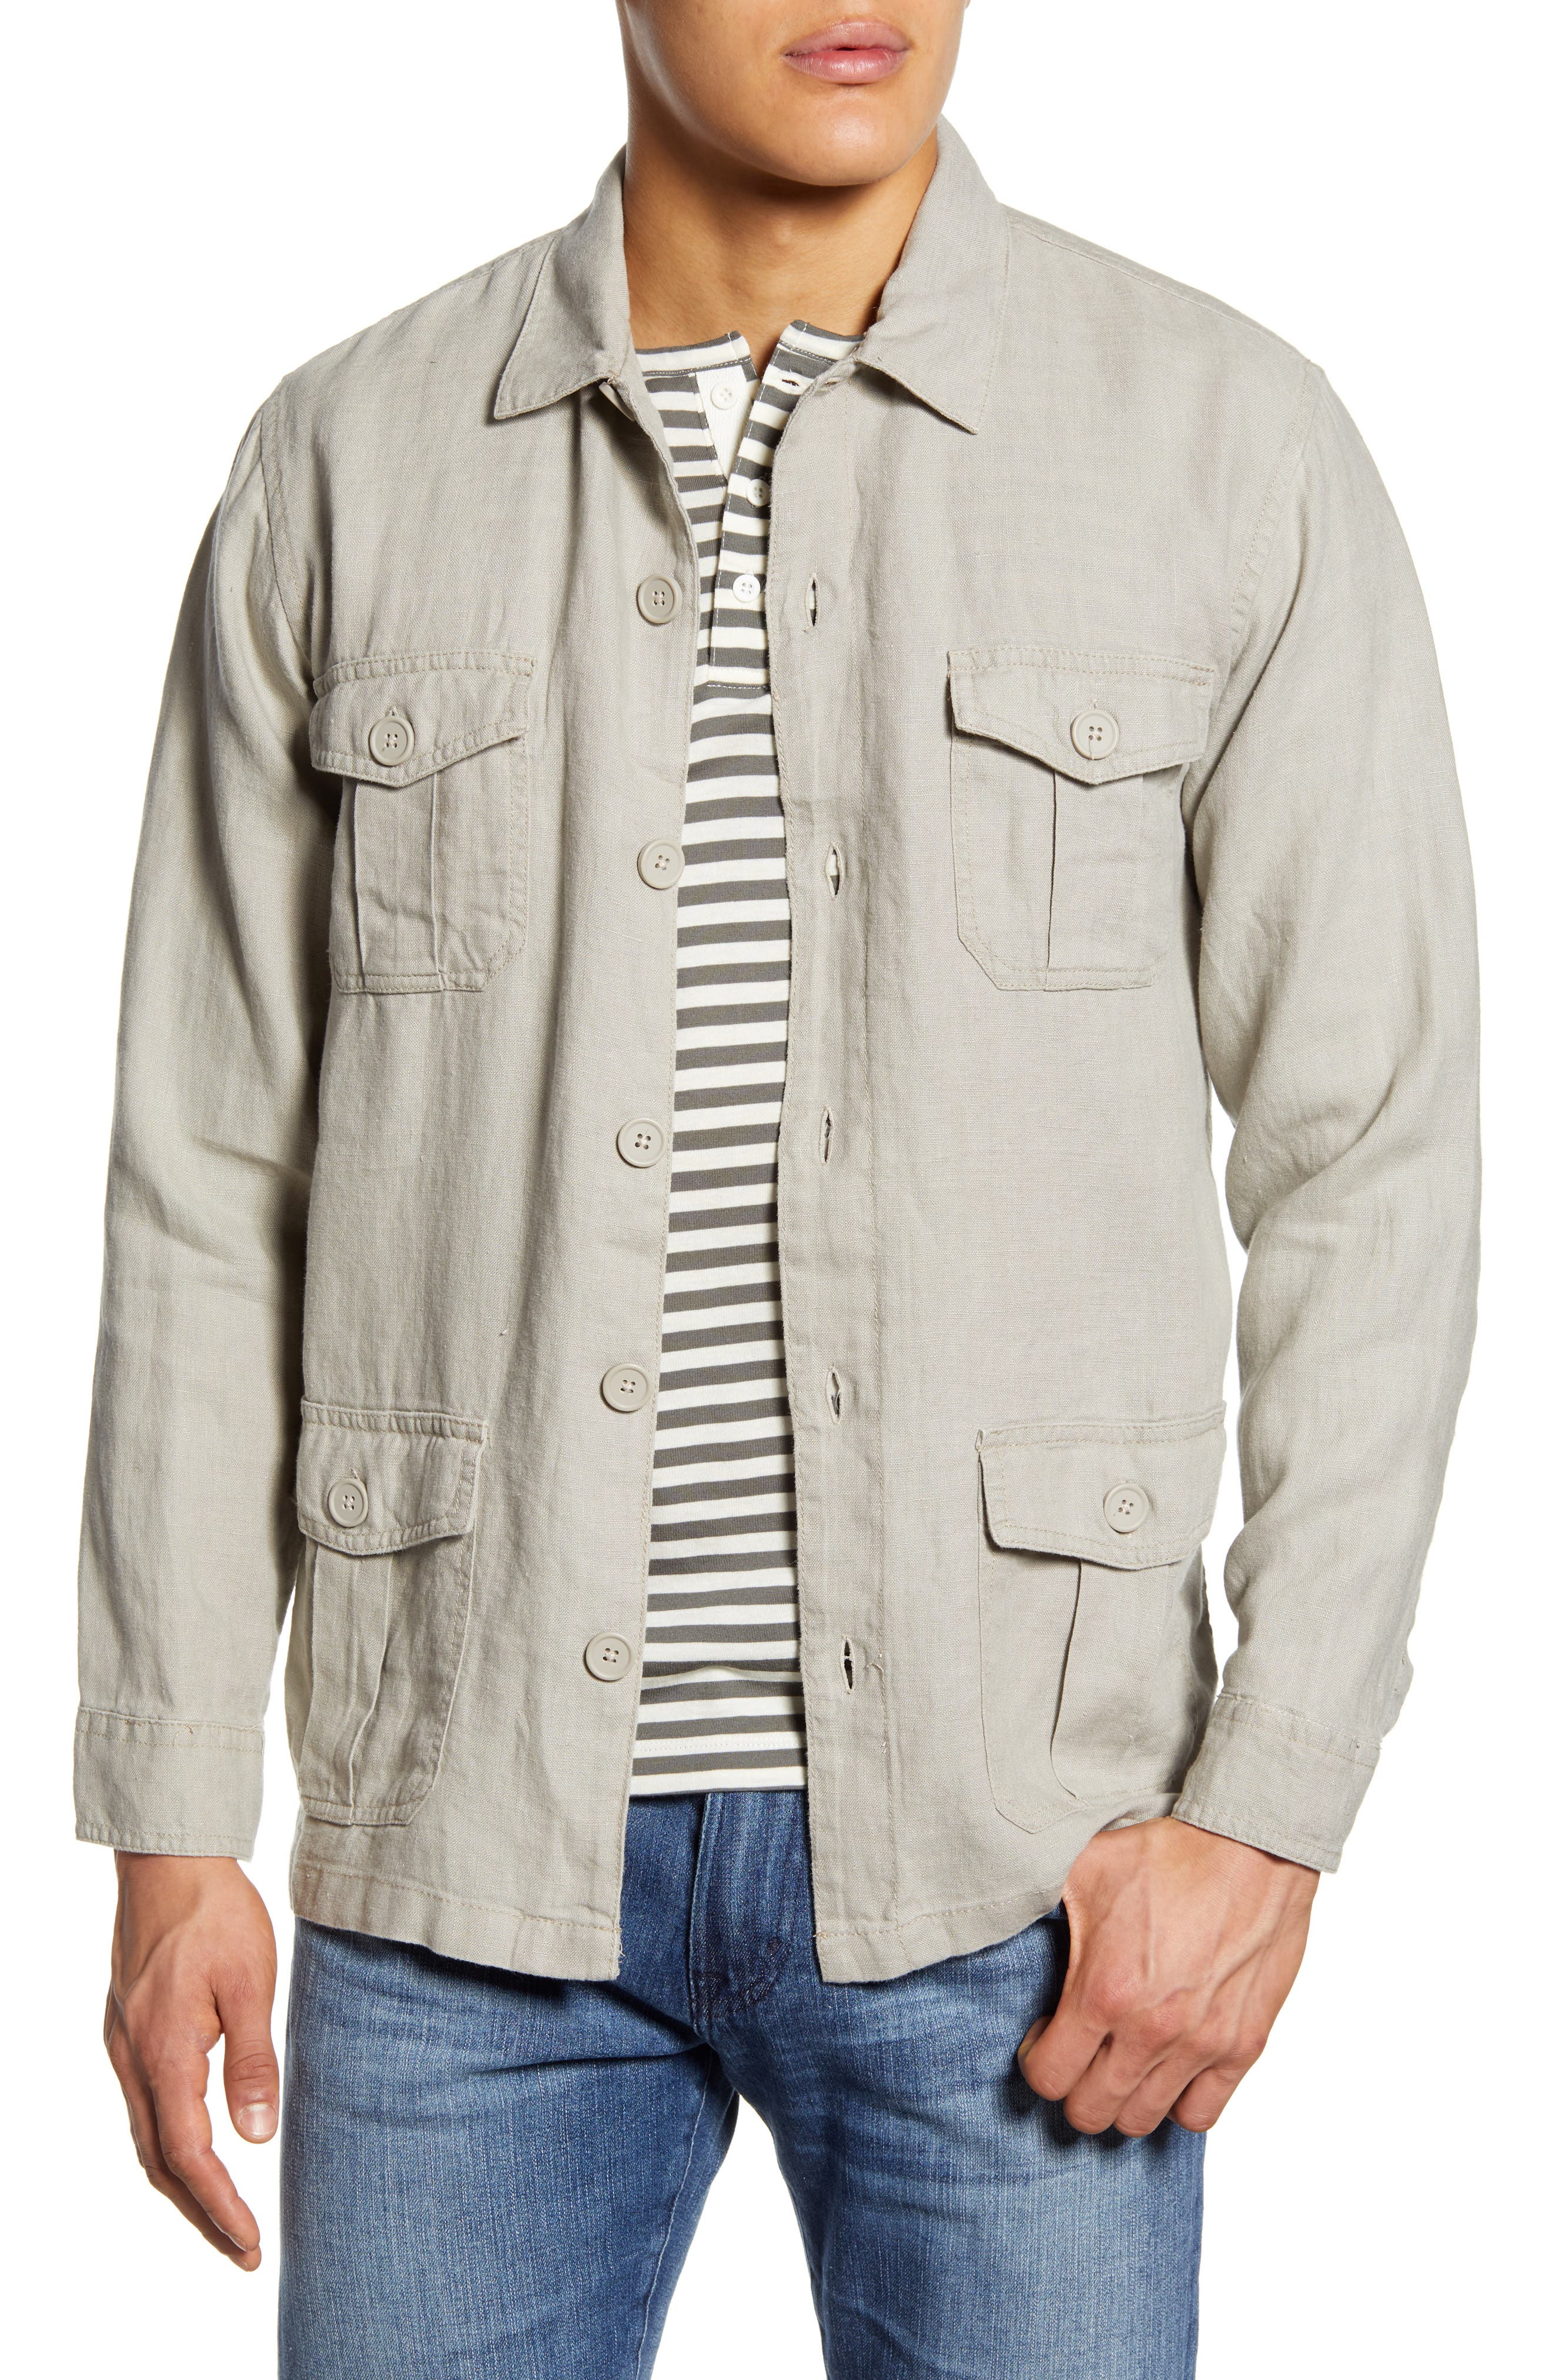 Men's Vintage Jackets & Coats Mens Onia Linen Safari Jacket $150.00 AT vintagedancer.com